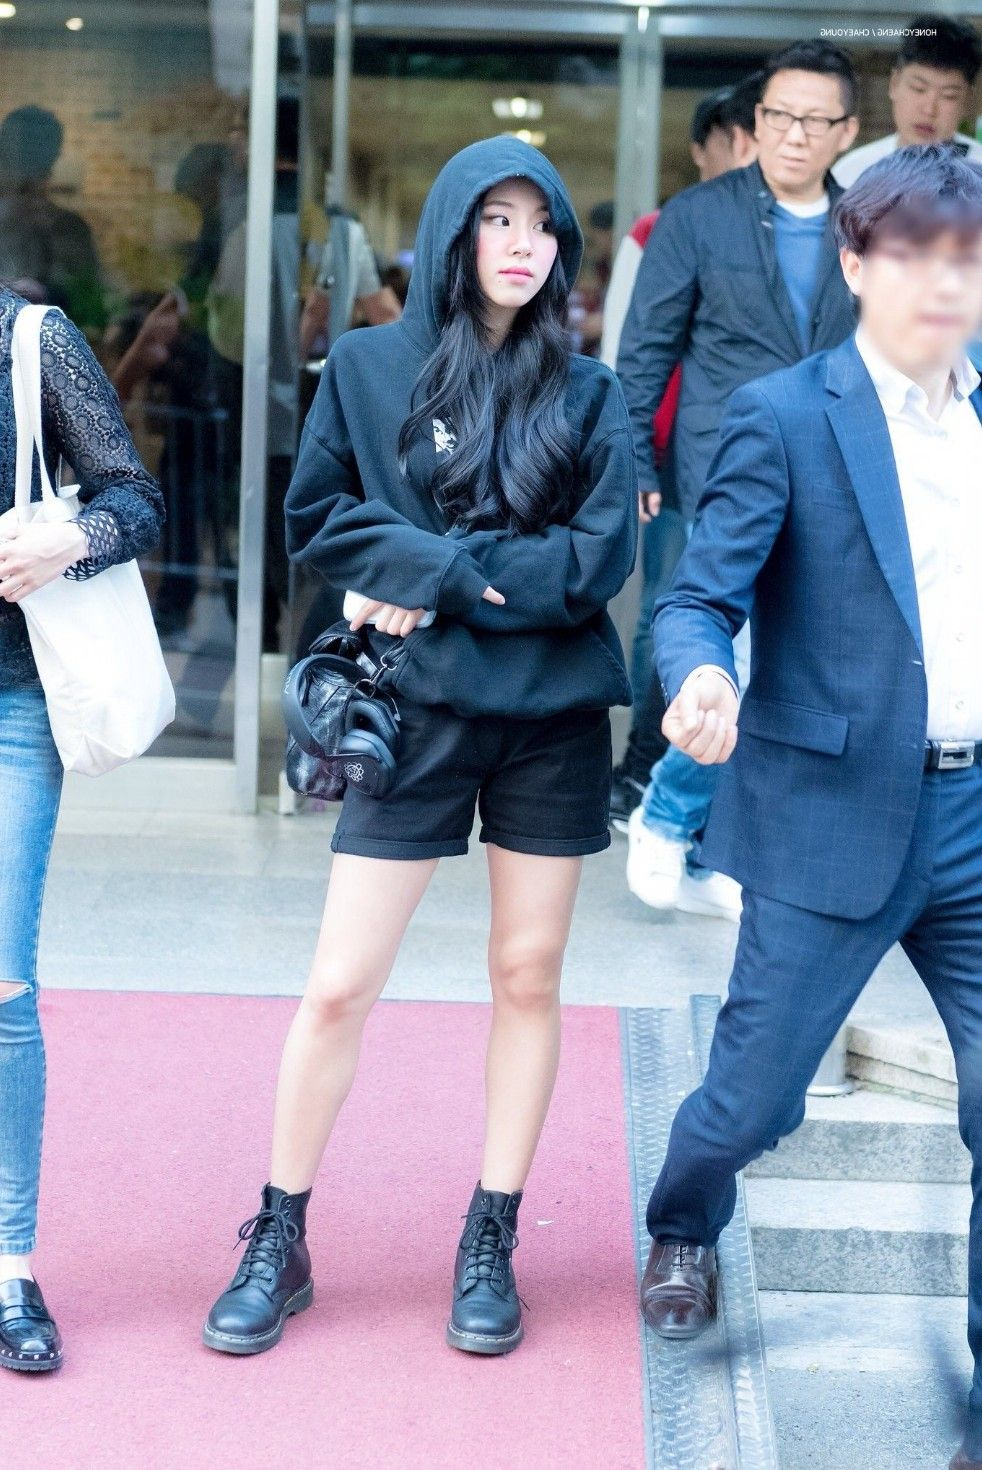 Pin By Fiorella On Kpoppies Cute Airport Outfit Kpop Fashion Doc Martens Outfit